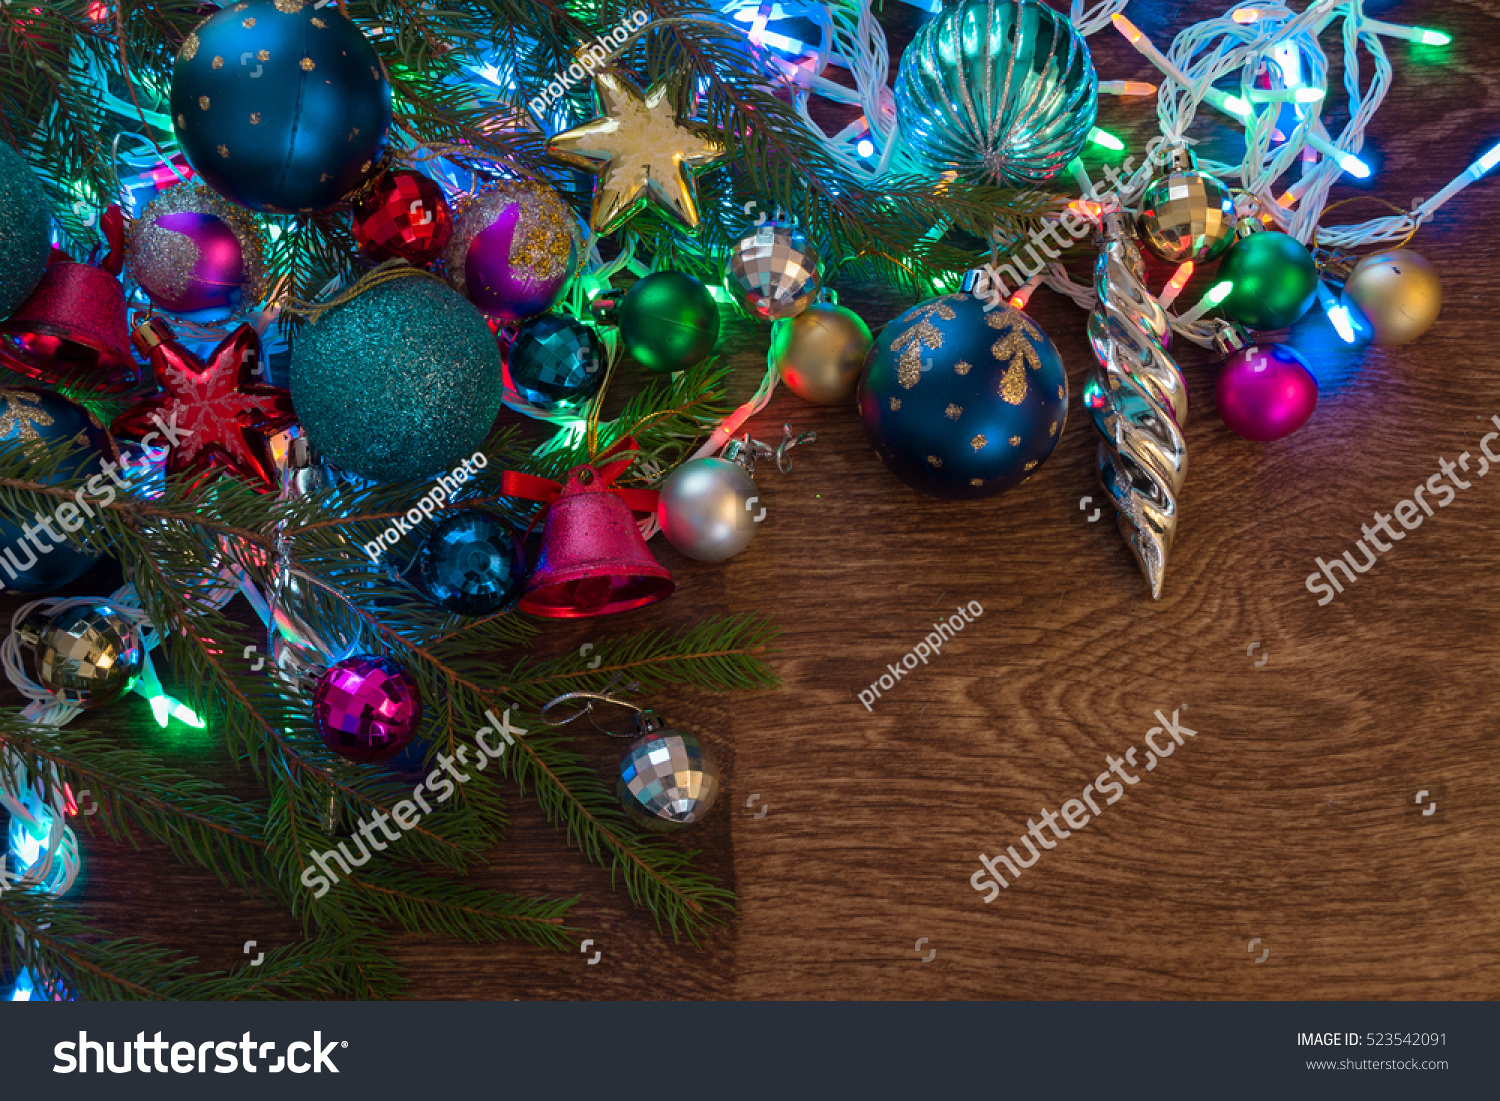 Christmas decorations garland tree branch on